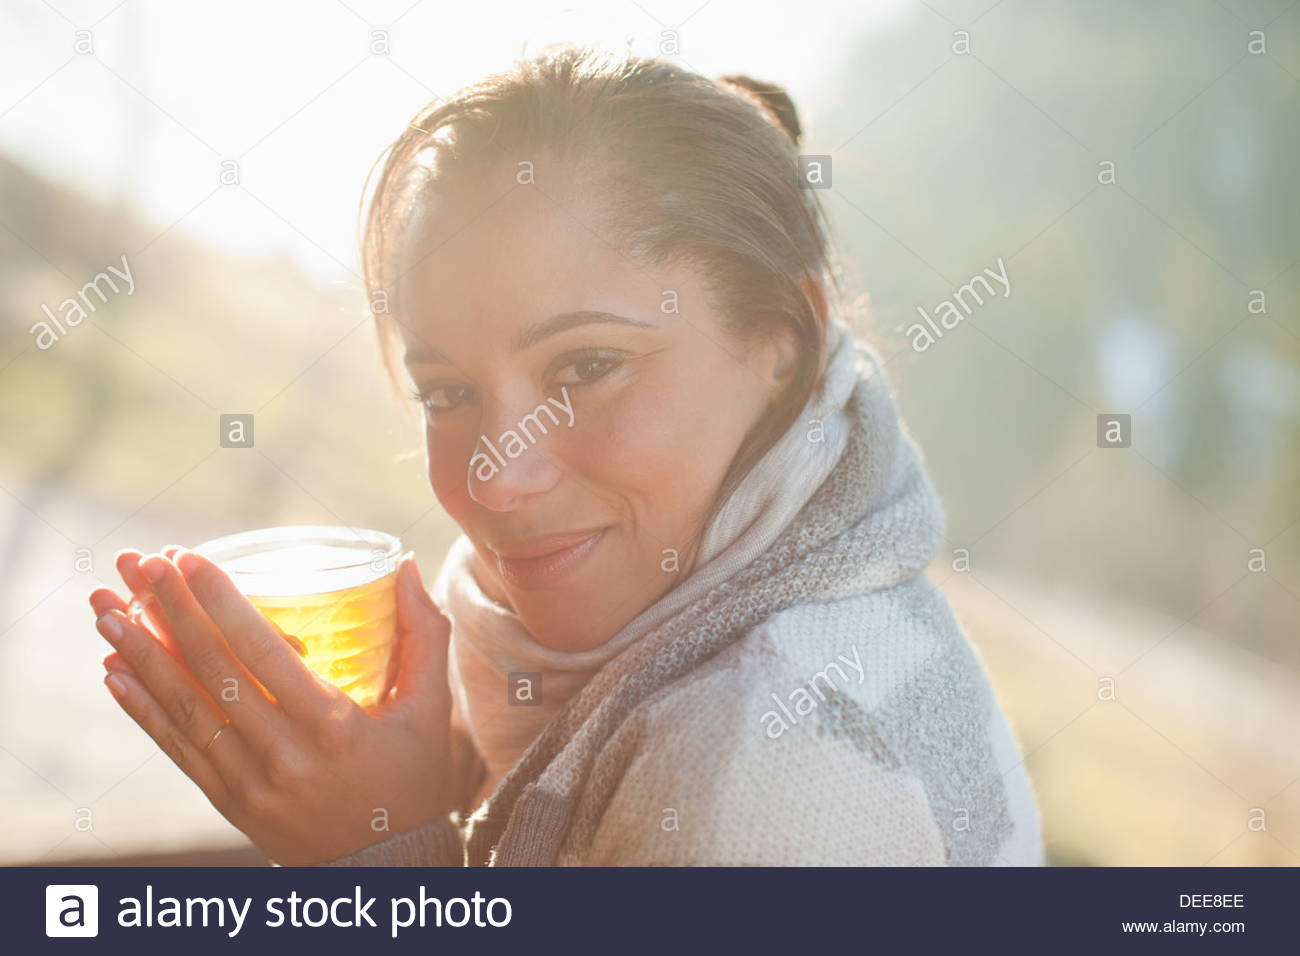 Portrait of smiling woman in scarf drinking cider - Stock Image